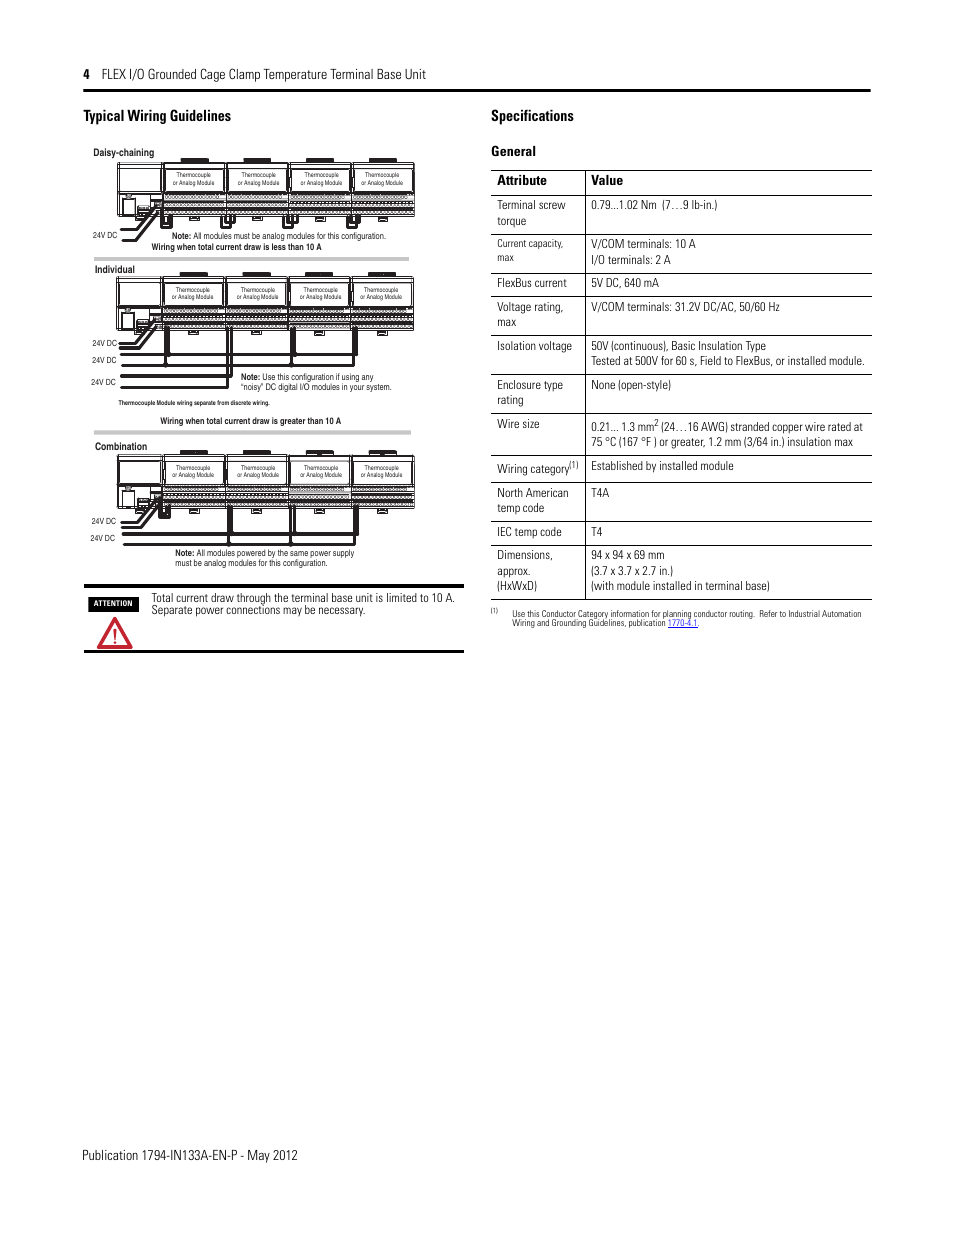 Typical wiring guidelines, Specifications, Typical wiring